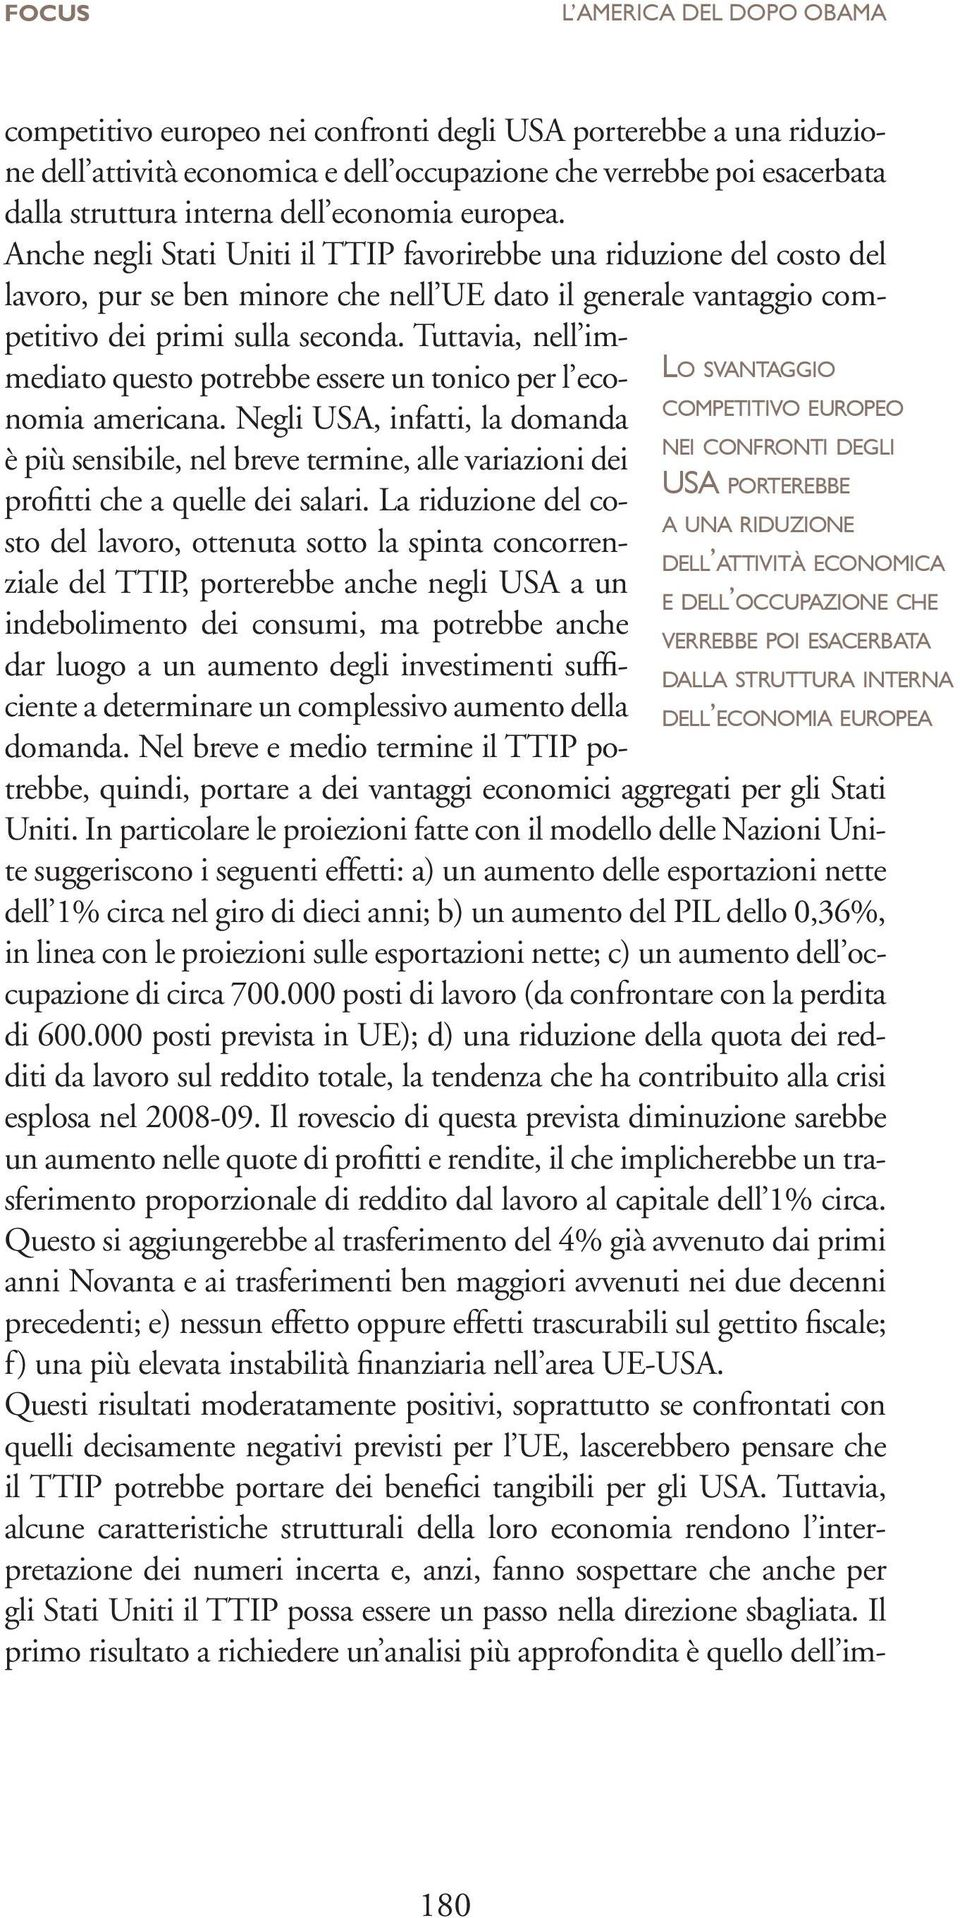 interna dell economia europea.